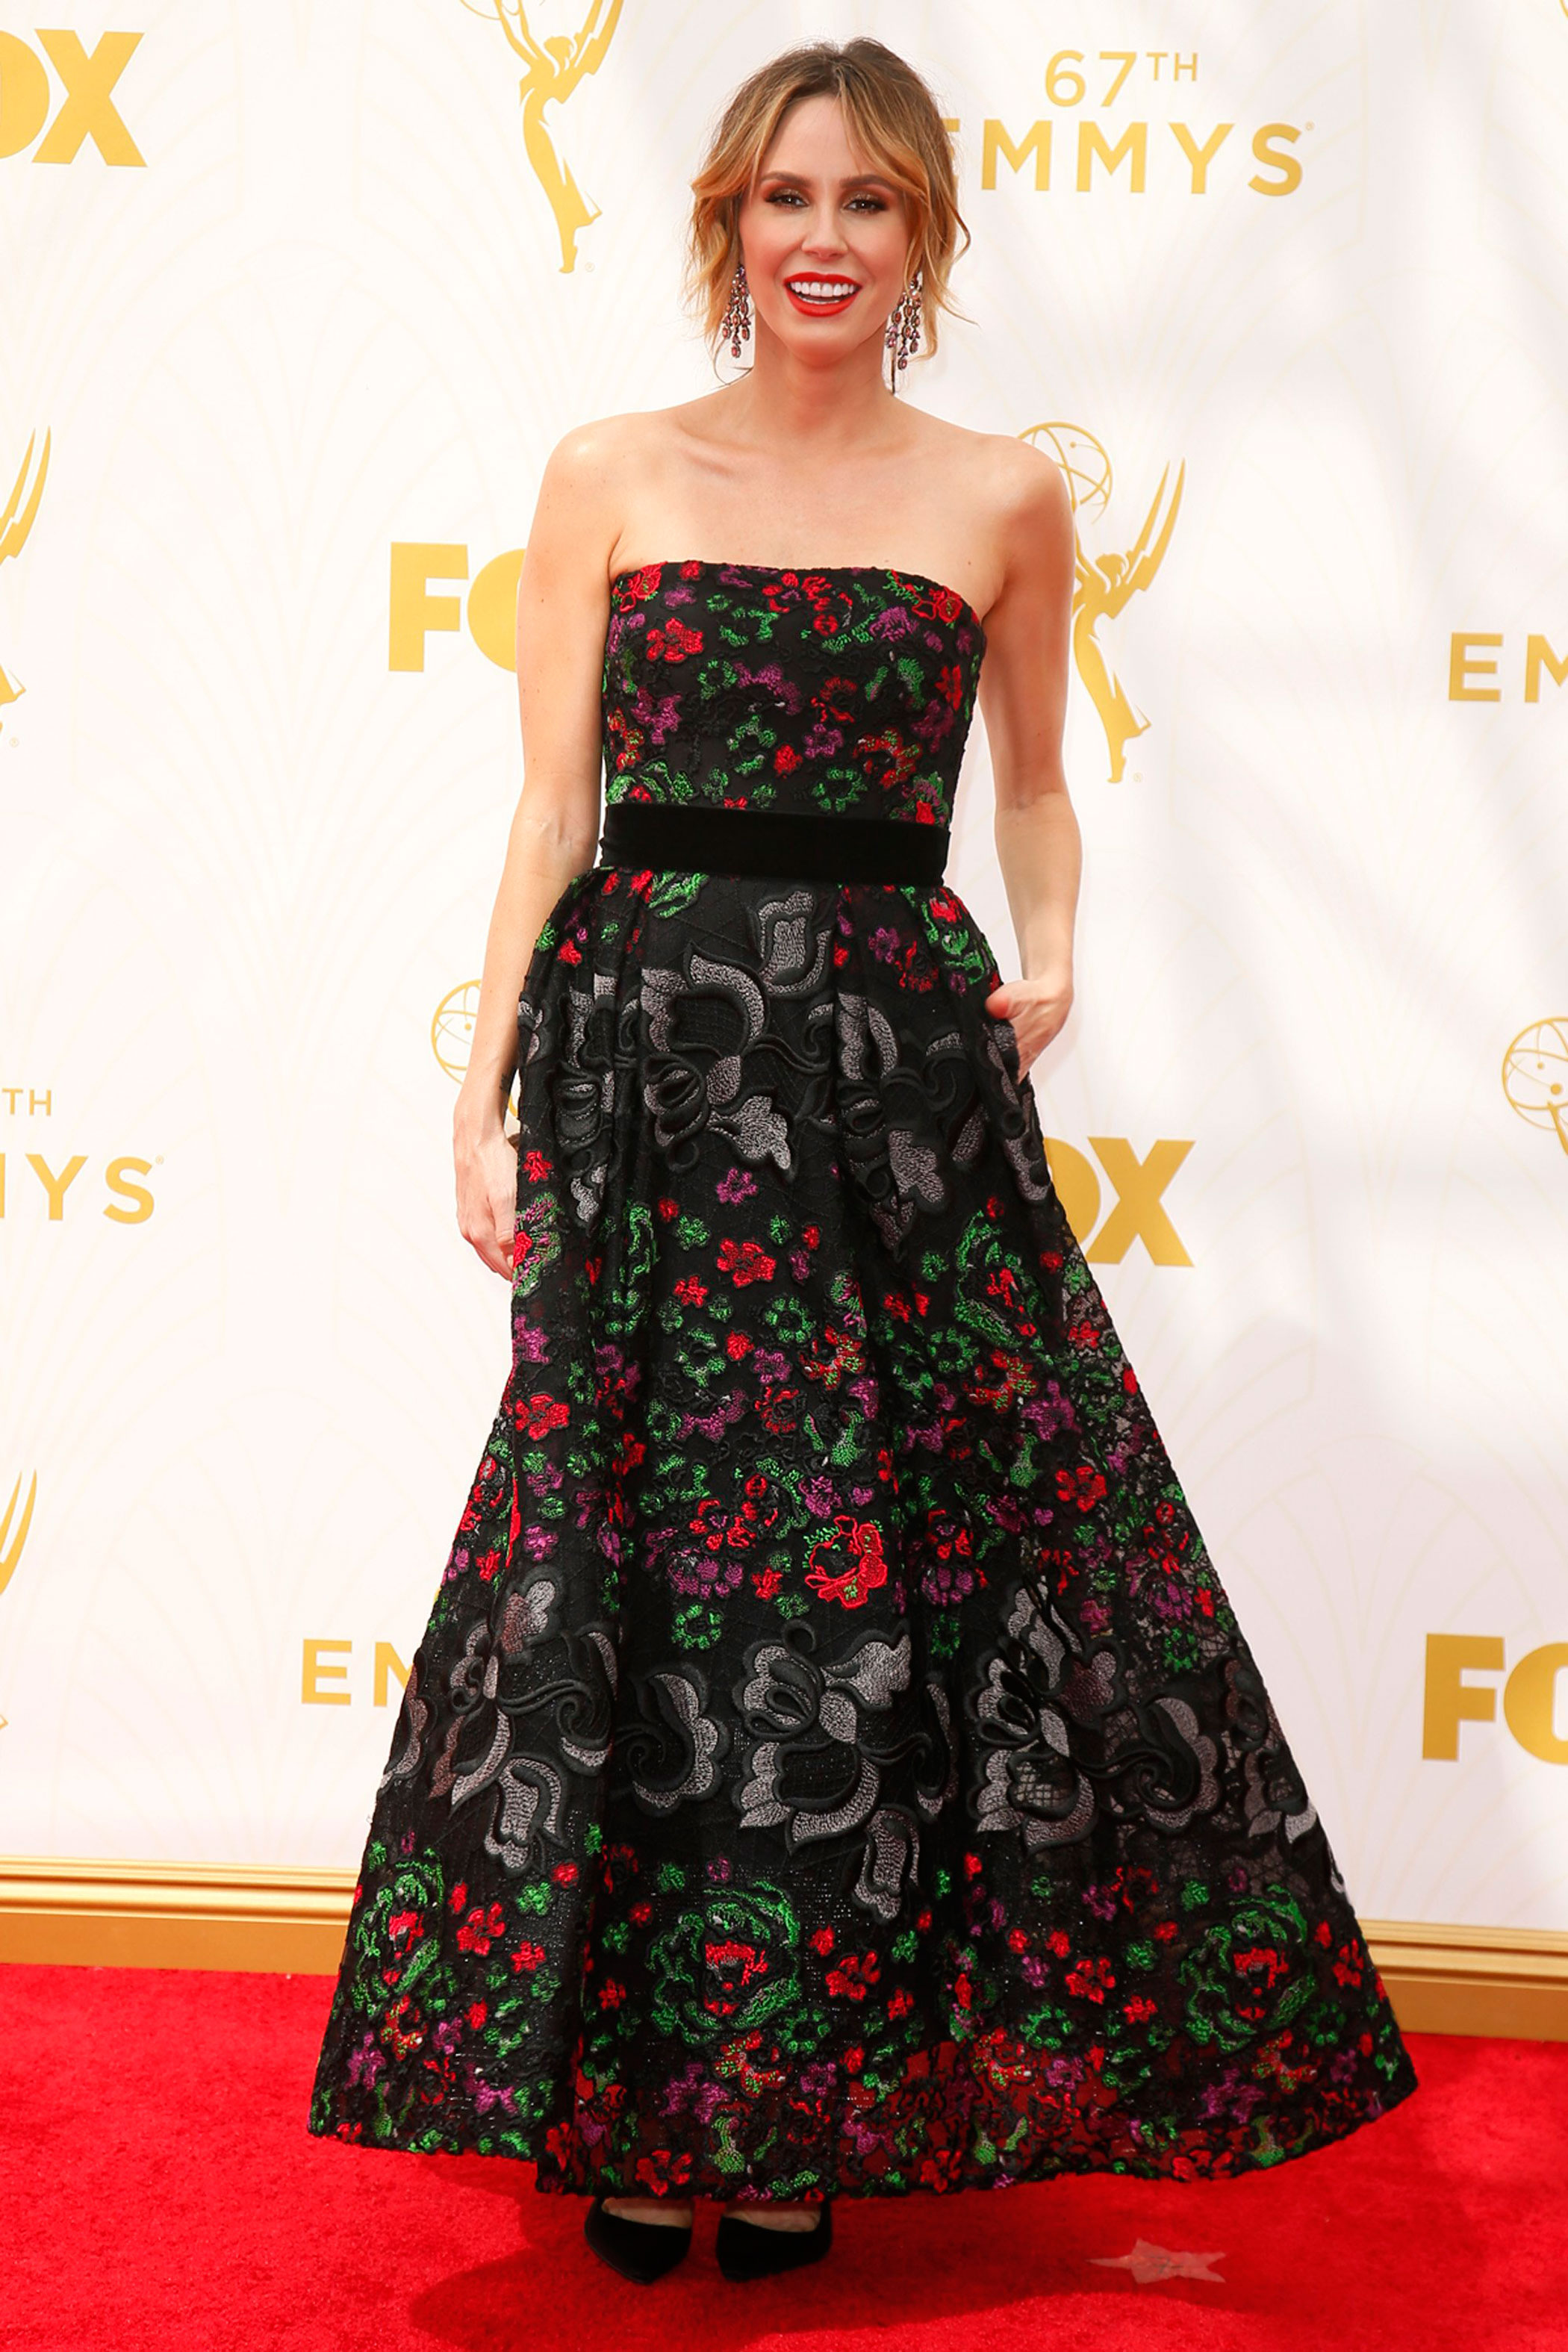 Keltie Knight at the 67th Emmy Award on Sept. 20, 2015 in Los Angeles.